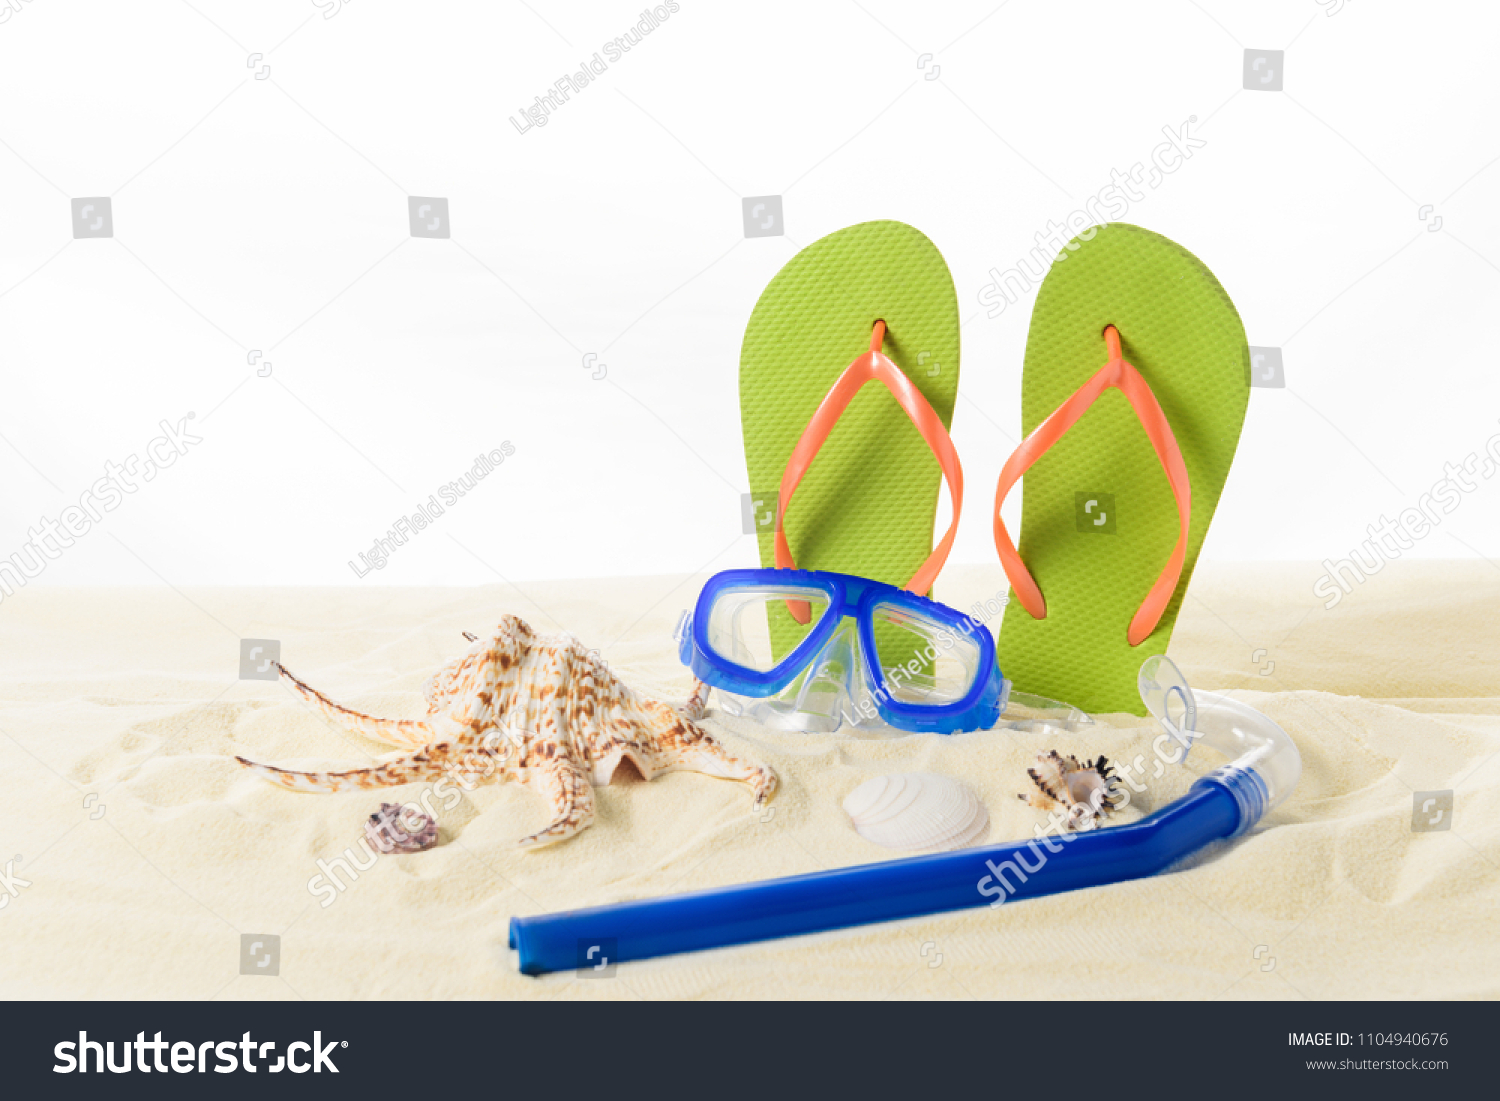 509d3fb63940 Flip flops and diving mask with seashells in sand isolated on white